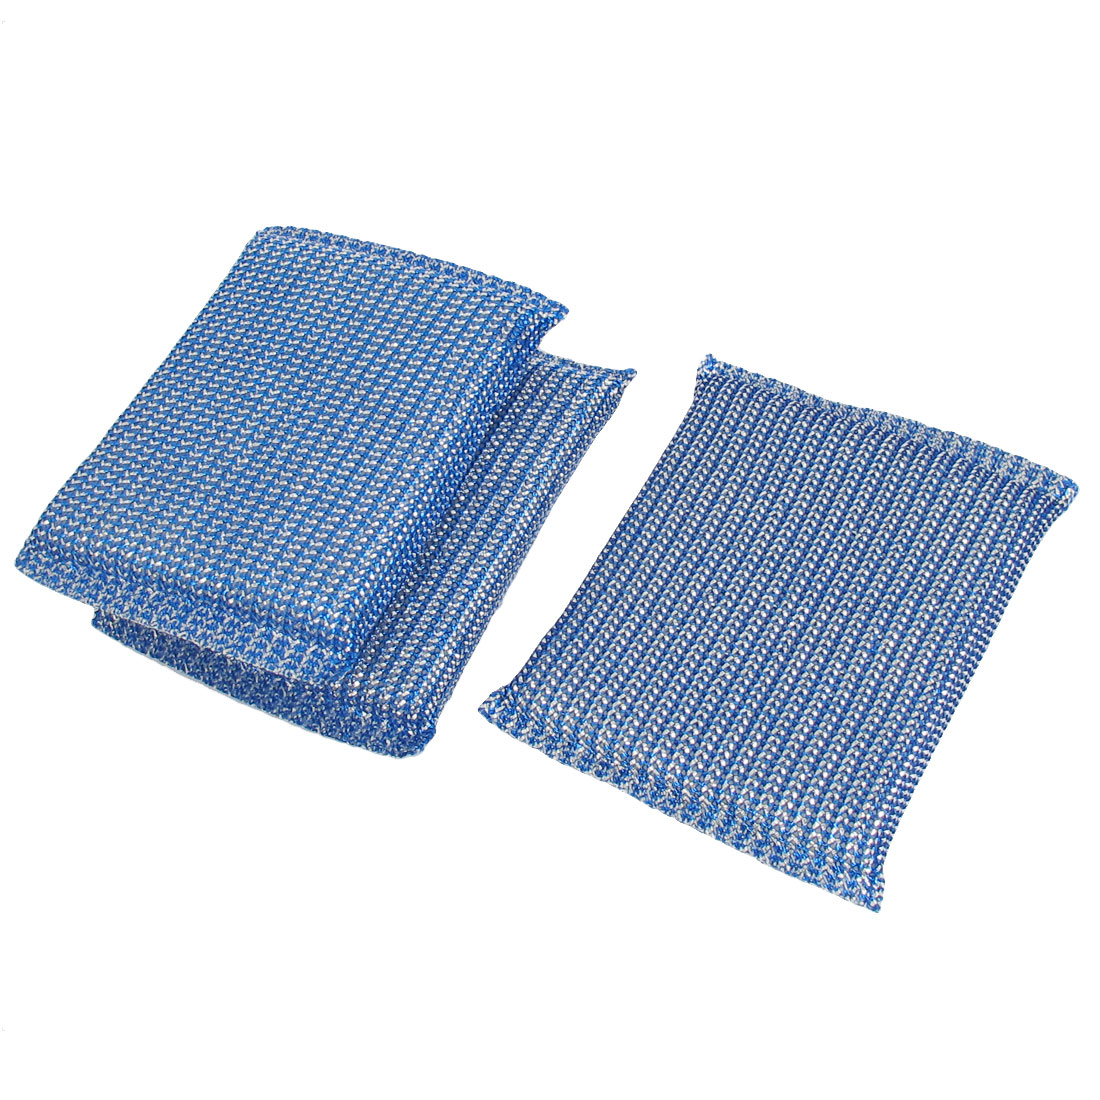 Home Kitchen Dish Bowl Pot Cup Cleaner Scrubing Pads Cleaning Tool Blue 3pcs